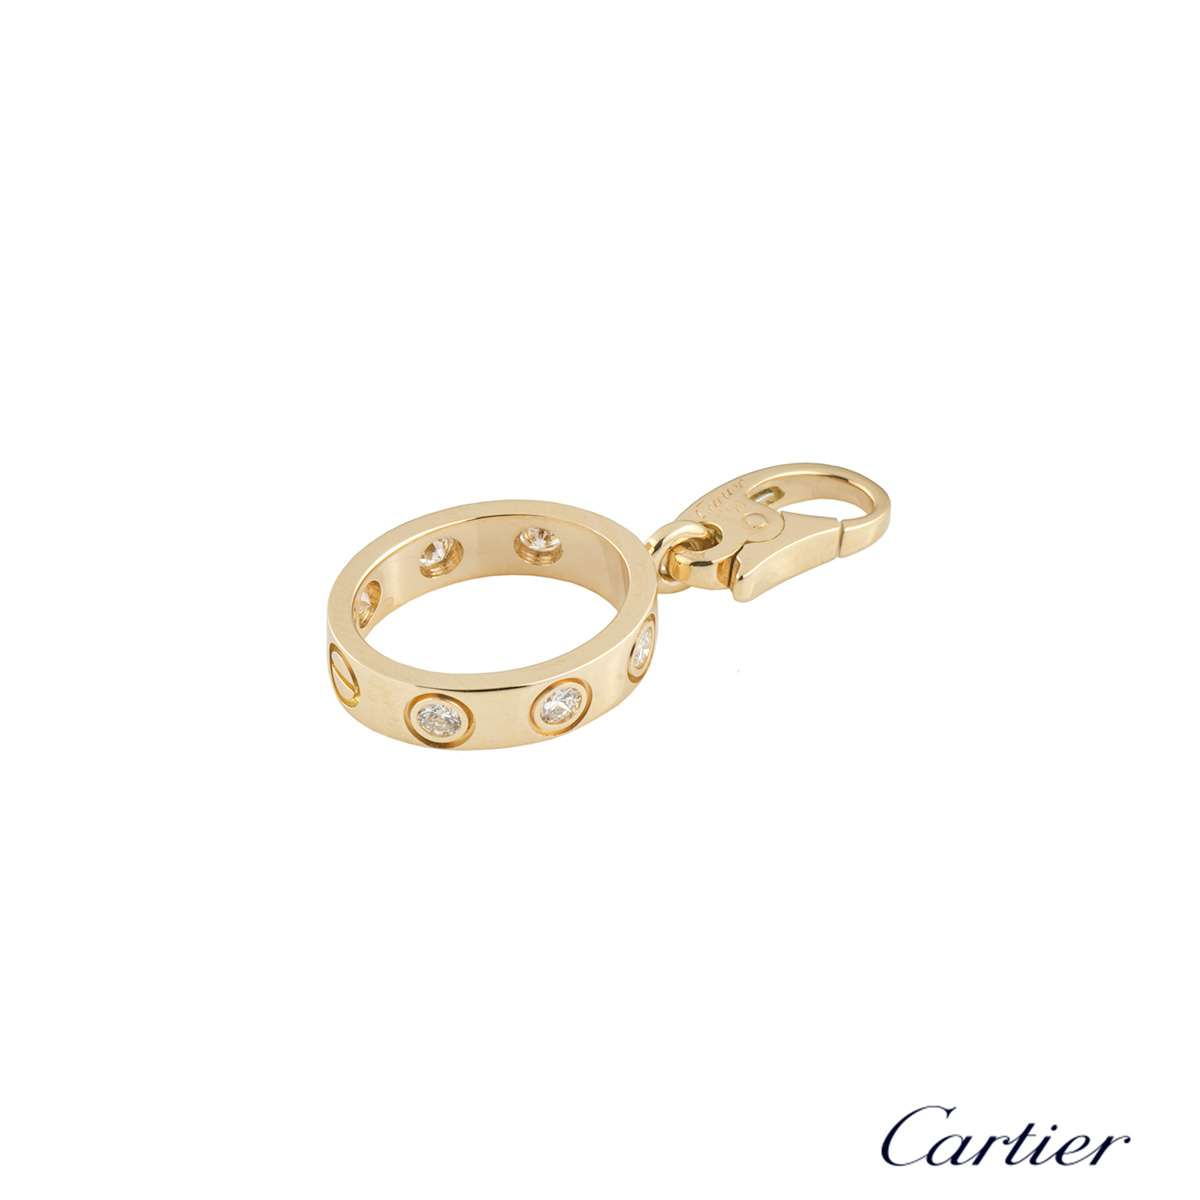 Cartier Yellow Gold Diamond Love Charm